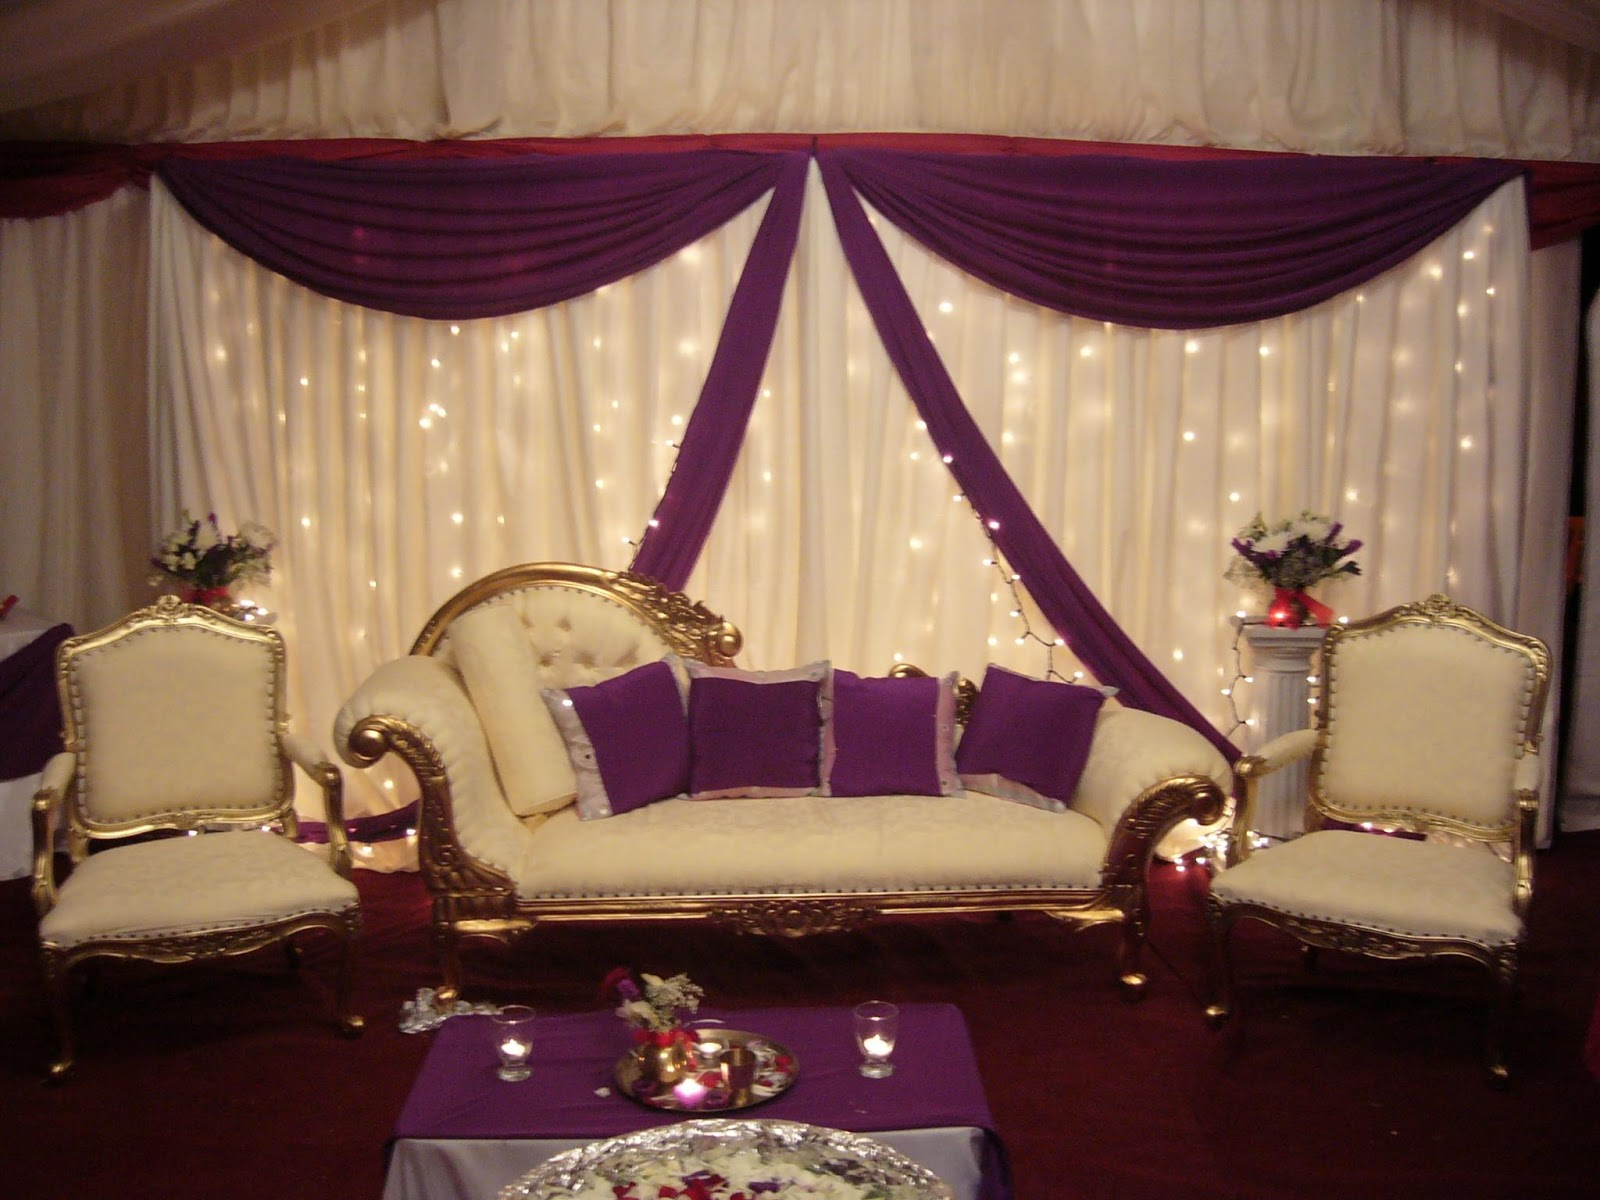 about marriage marriage decoration photos 2013 marriage stage decoration ideas 2014. Black Bedroom Furniture Sets. Home Design Ideas